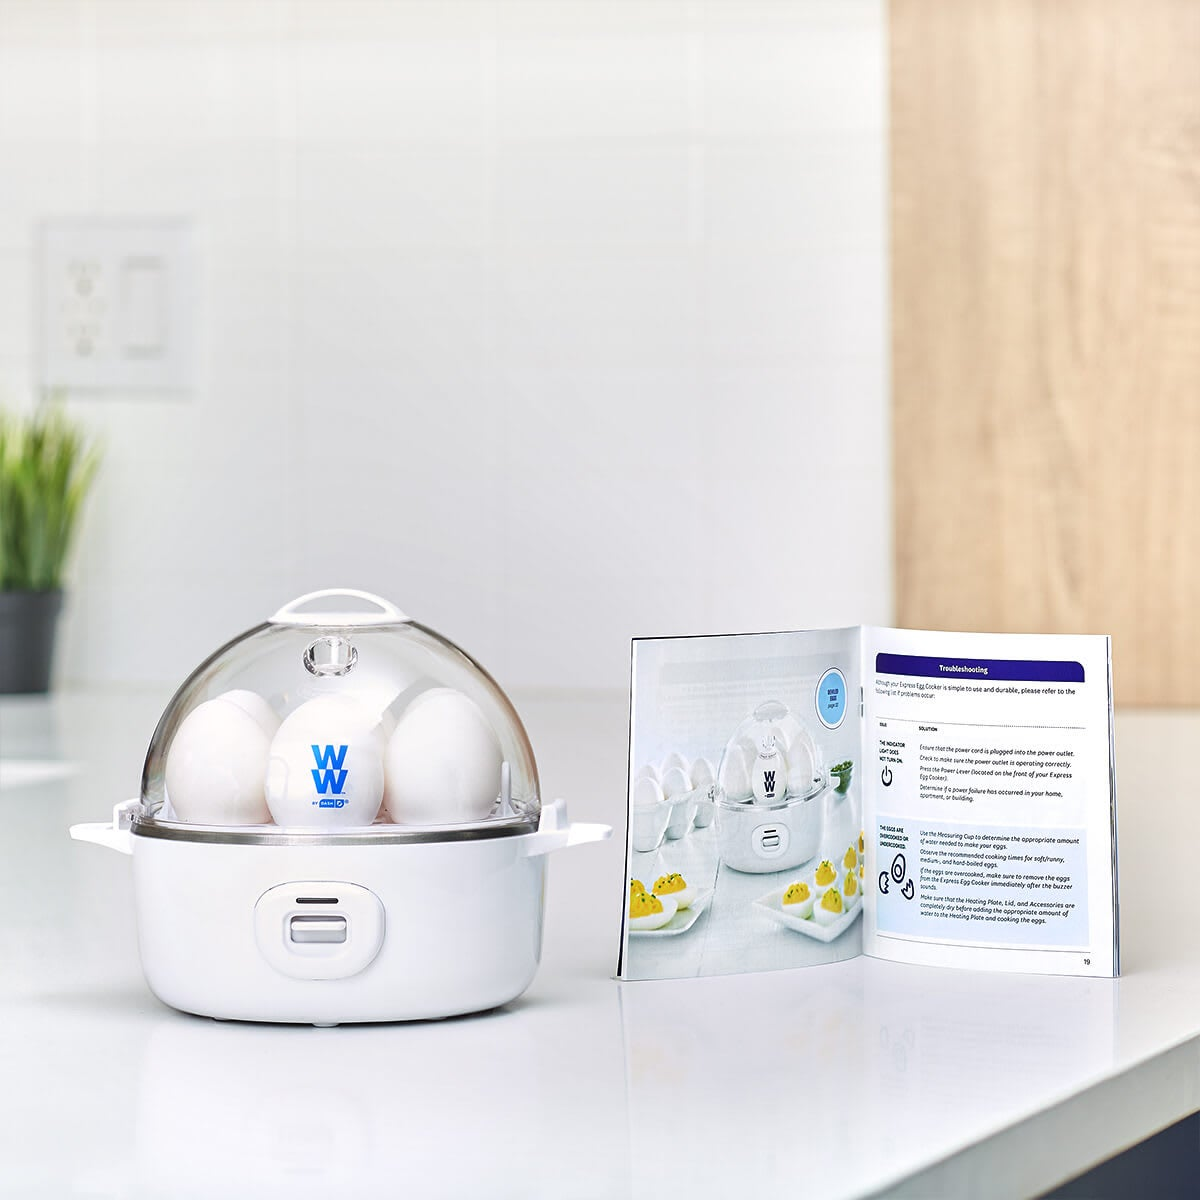 WW by Dash Express Egg Cooker - lifestyle